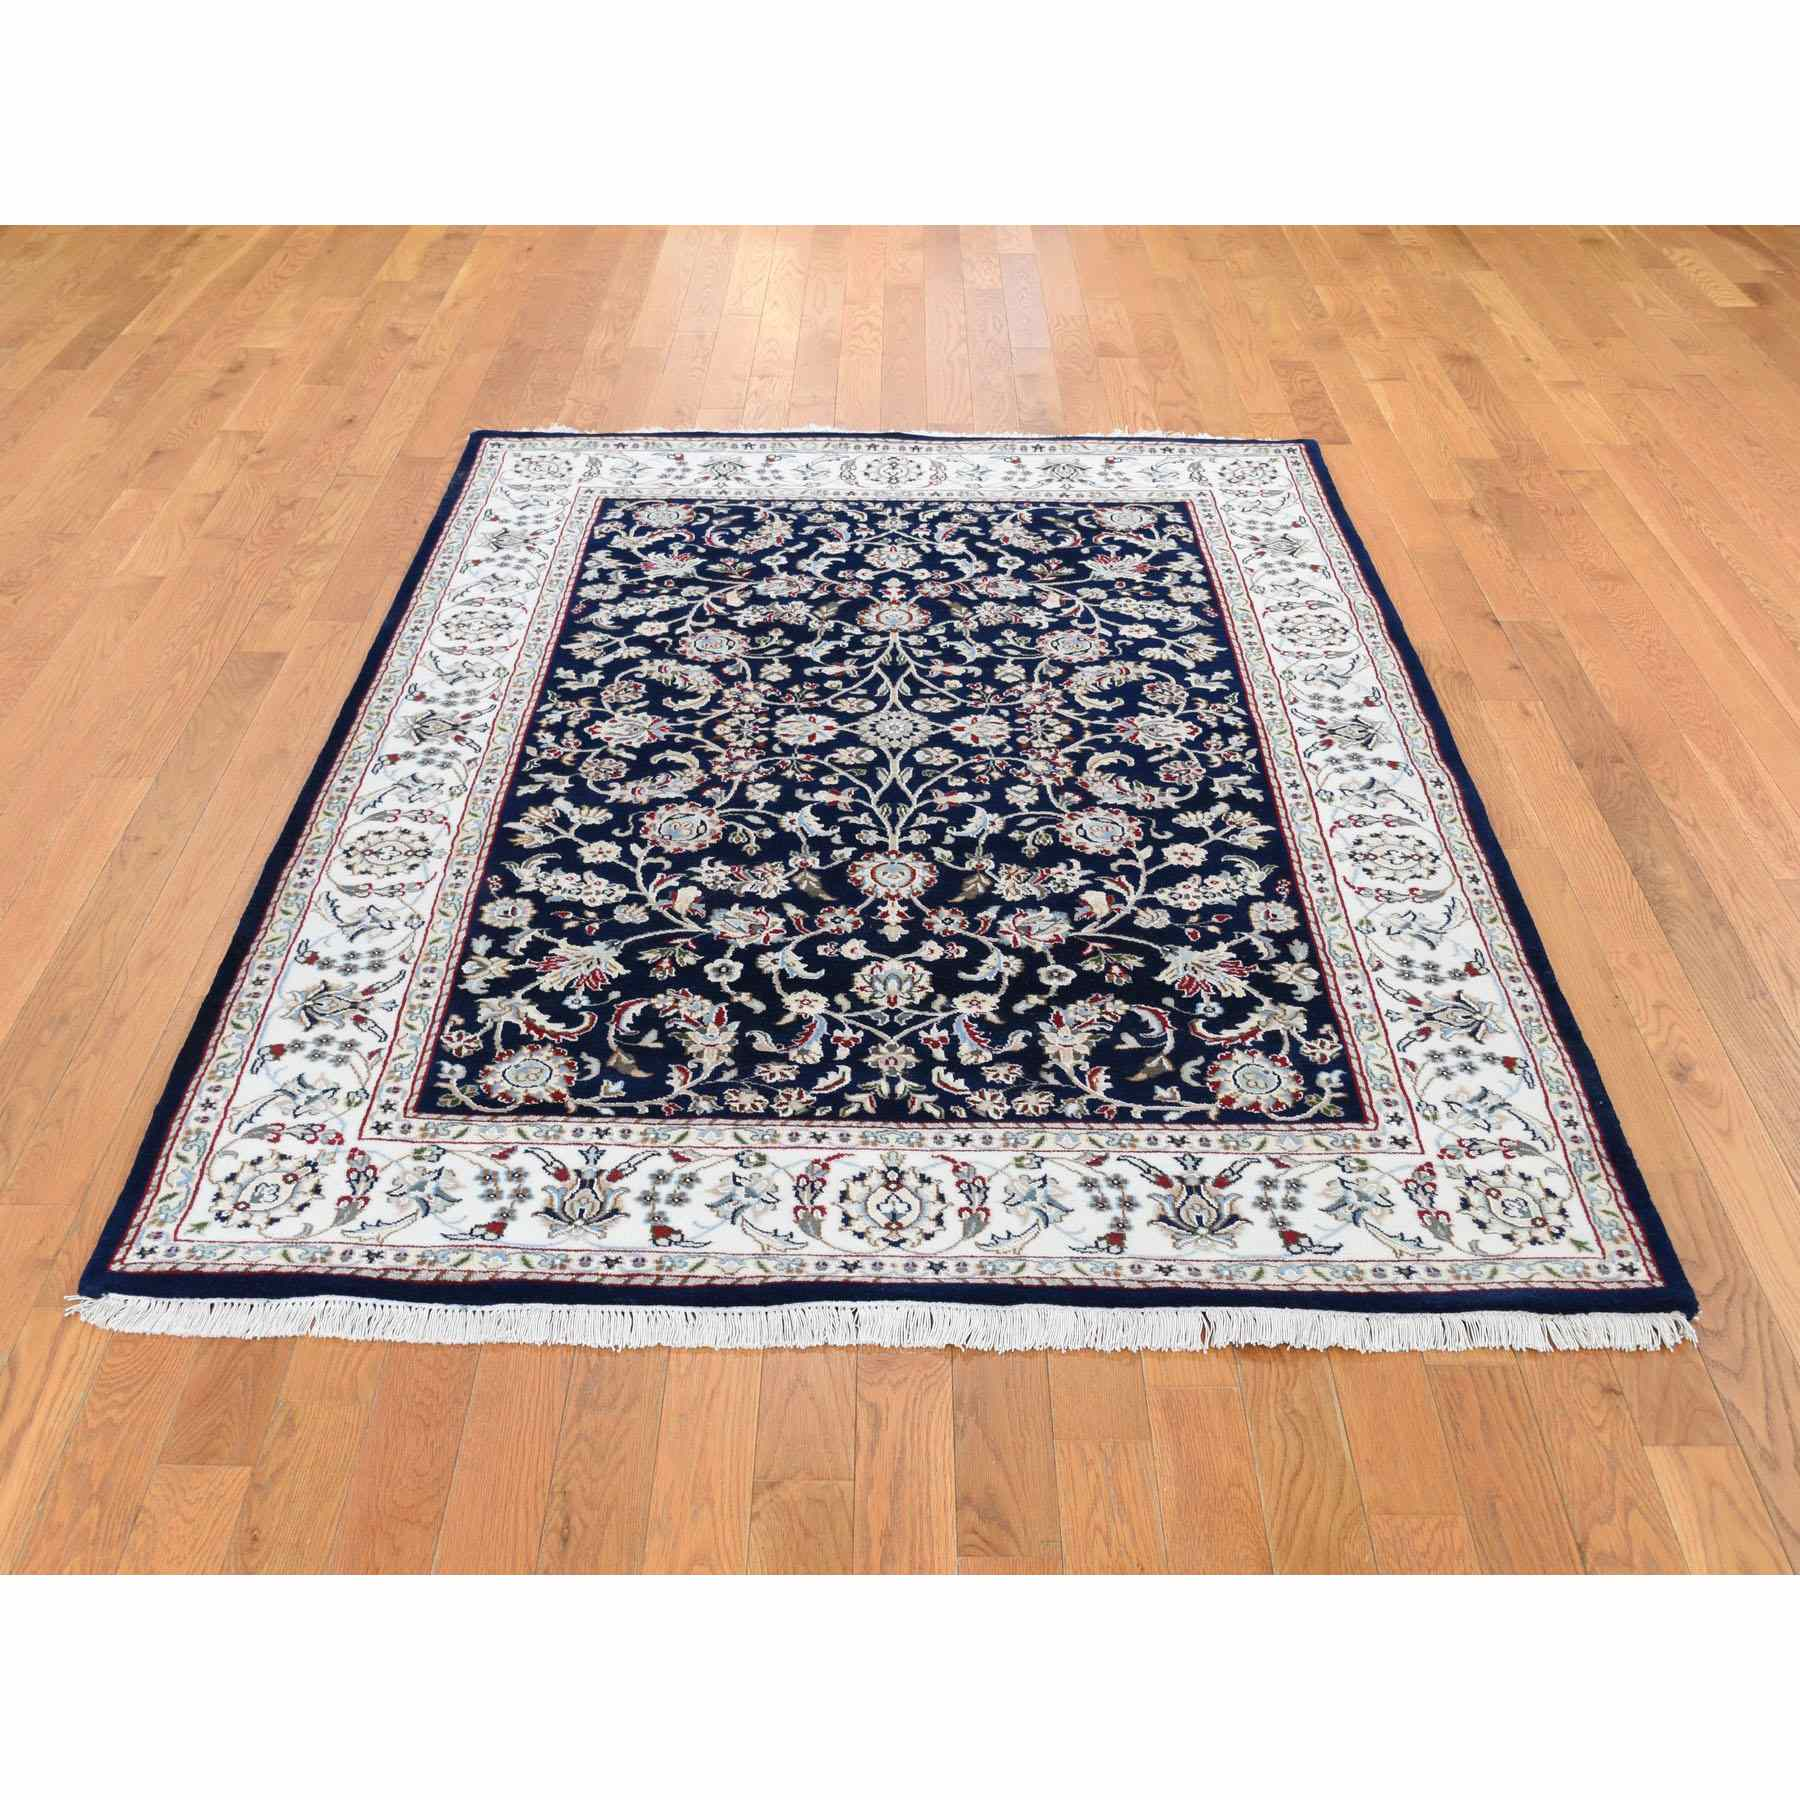 4-10 x6-10  Navy Blue Nain Wool And Silk All Over Design 250 KPSI Hand Knotted Oriental Rug